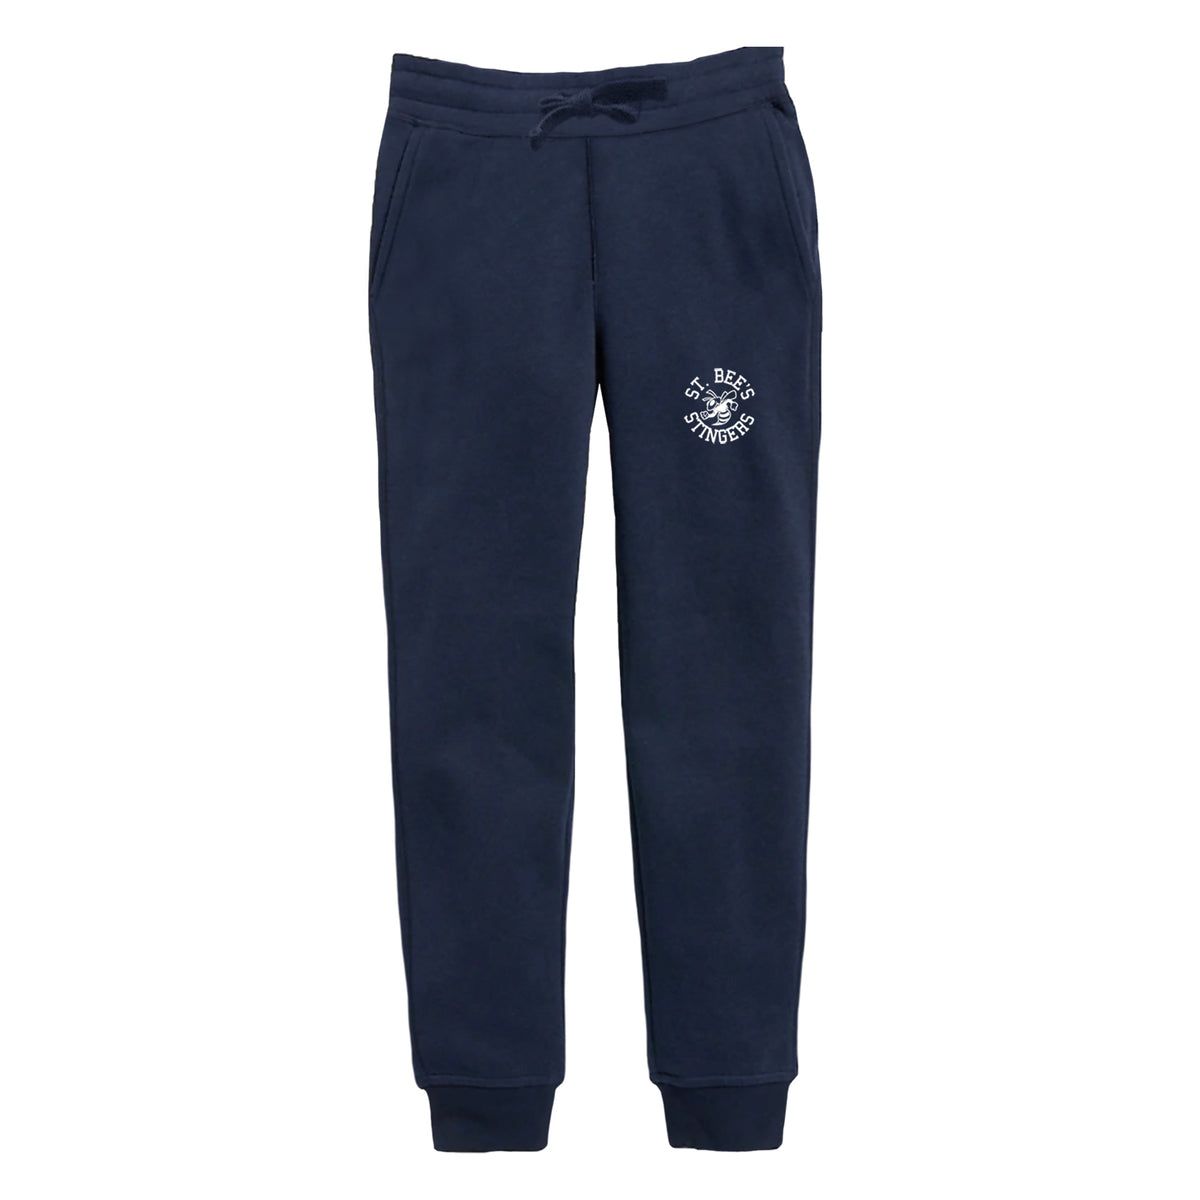 ST. BERNADETTE SWEATPANTS, ADULT